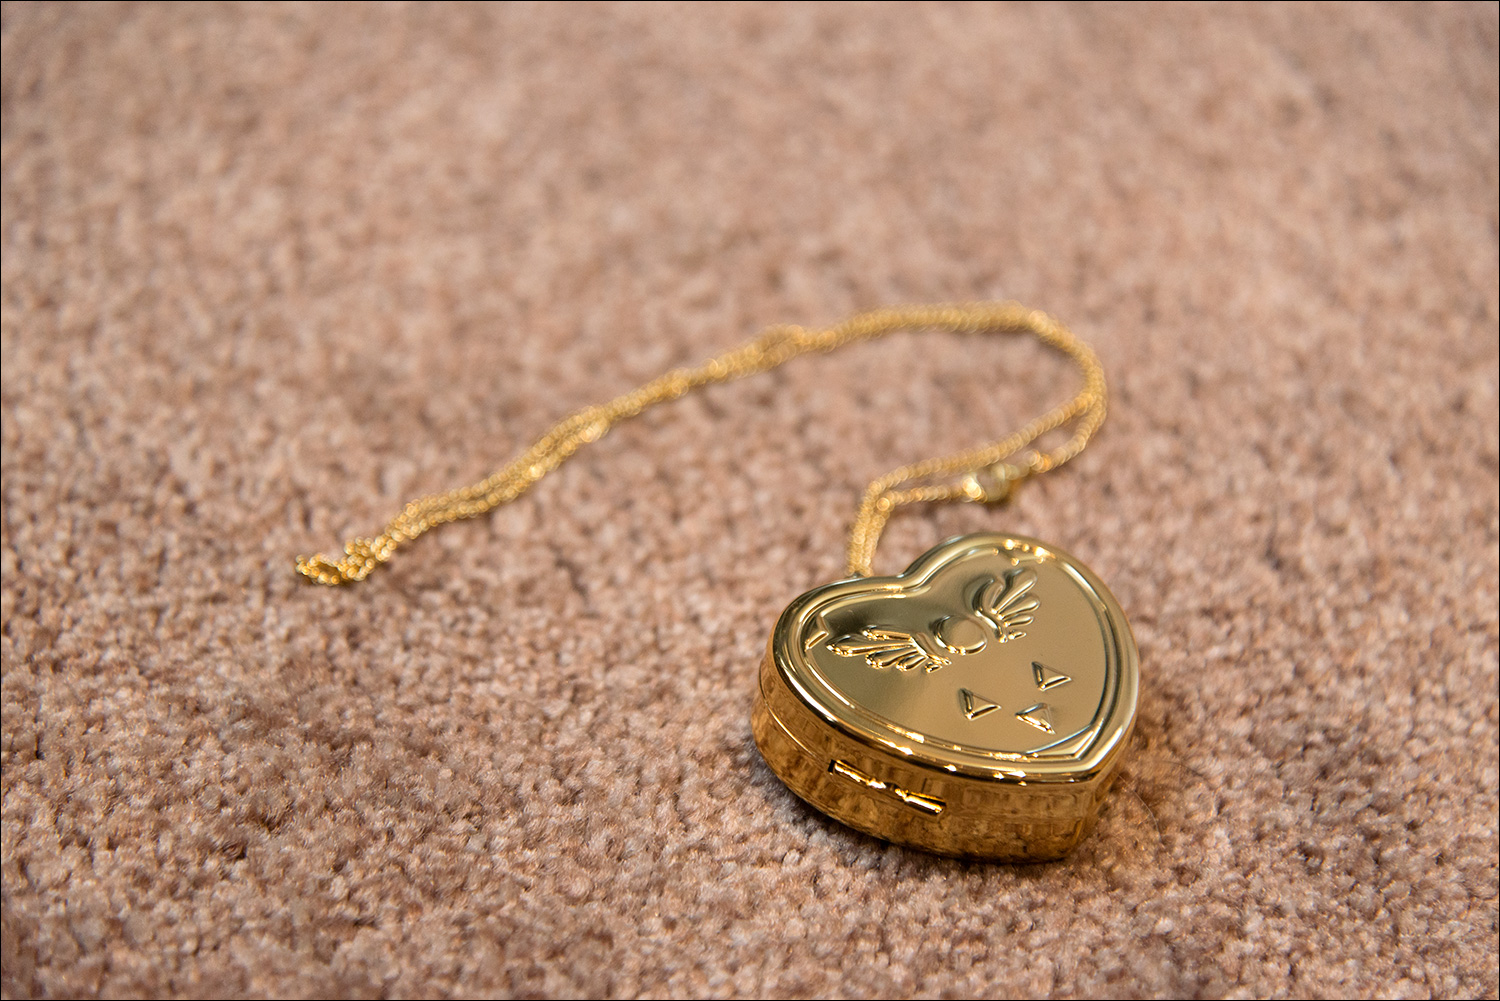 Undertale collectors edition video game shelf reveal a working music box it can be winded up using the little key on the back and yes this is actually a 14k gold plated brass locket aloadofball